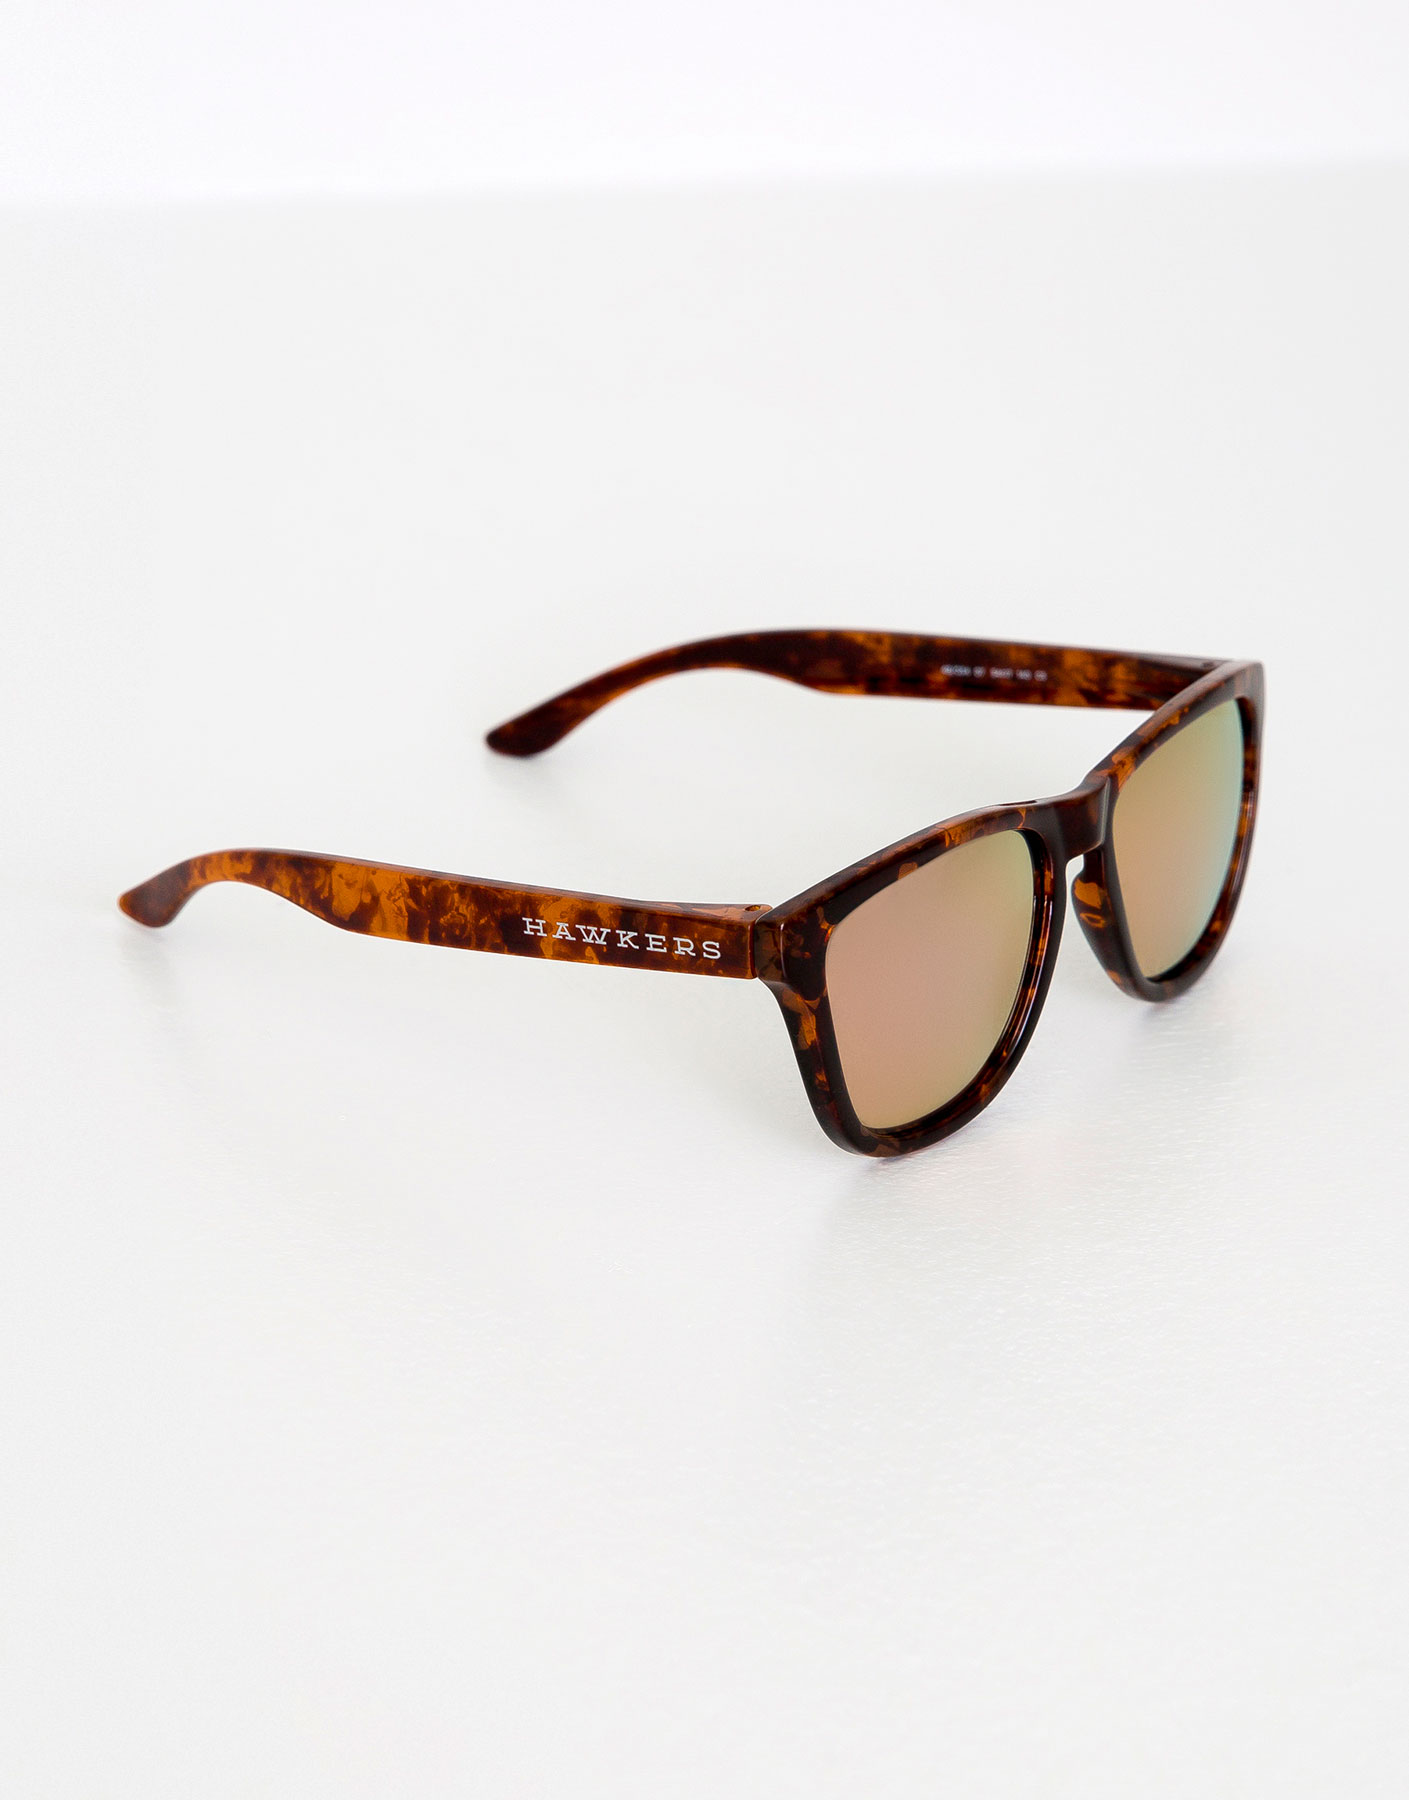 Lentes de sol hawkers carey rose gold one